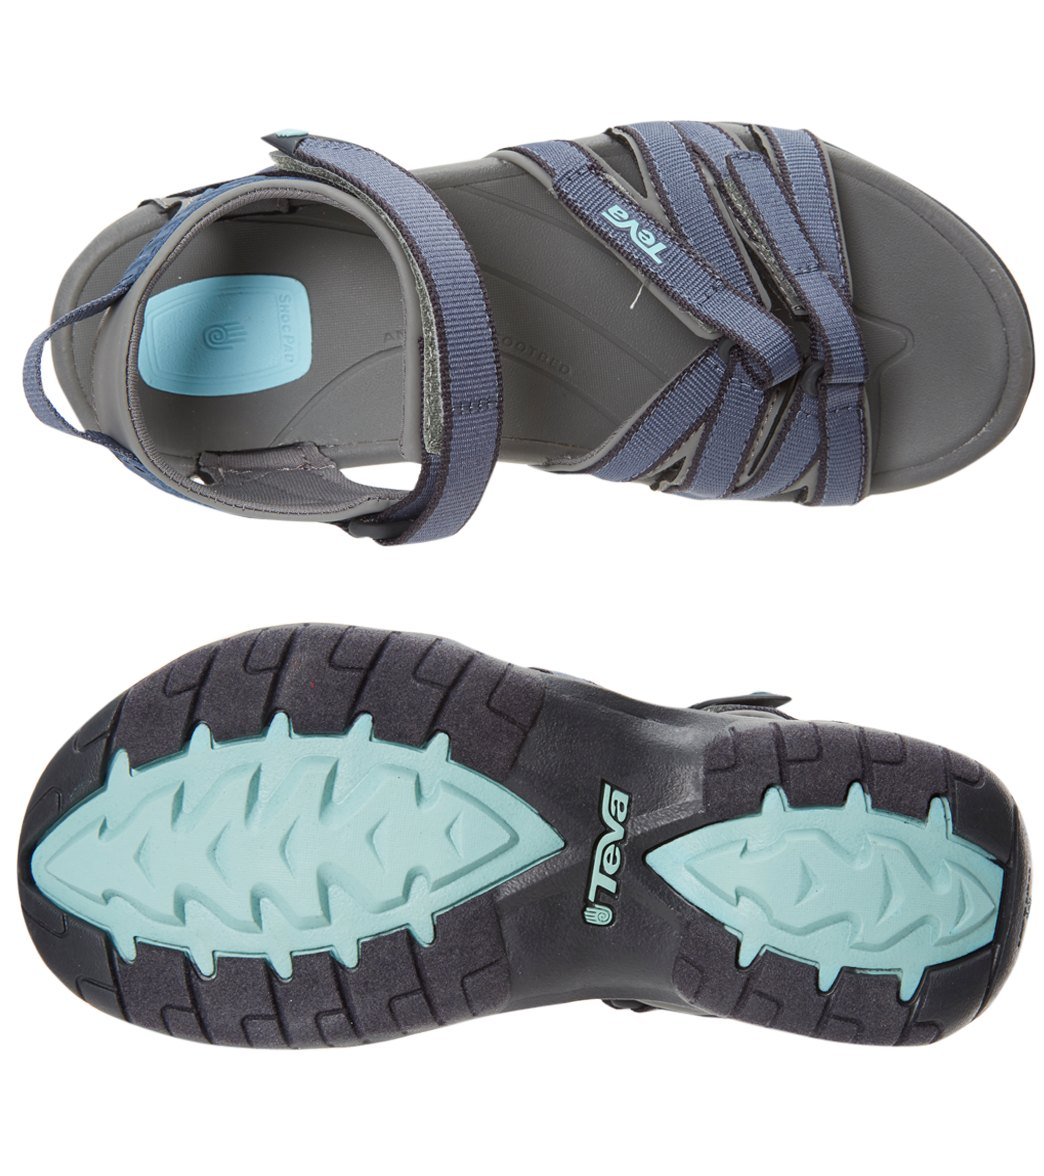 ef1a035a2ec0 Teva Women s Tirra Sandal at SwimOutlet.com - Free Shipping